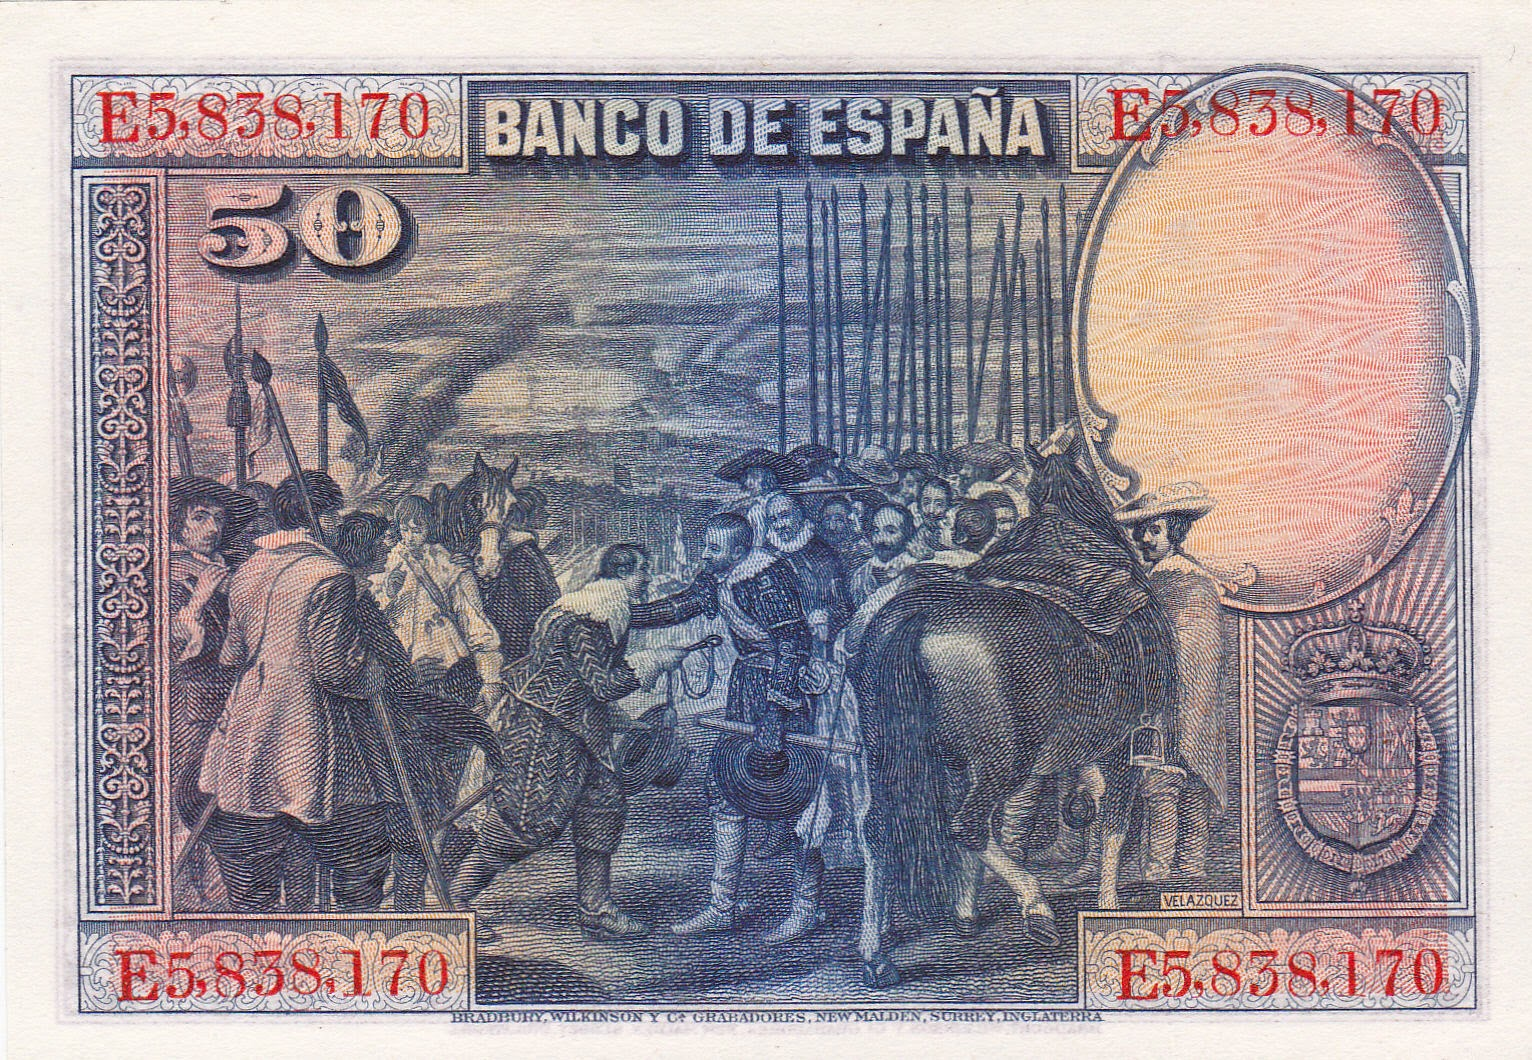 Spain money currency 50 Pesetas banknote 1928 Surrender of Breda painting by the Spanish Golden Age painter Diego Velazquez